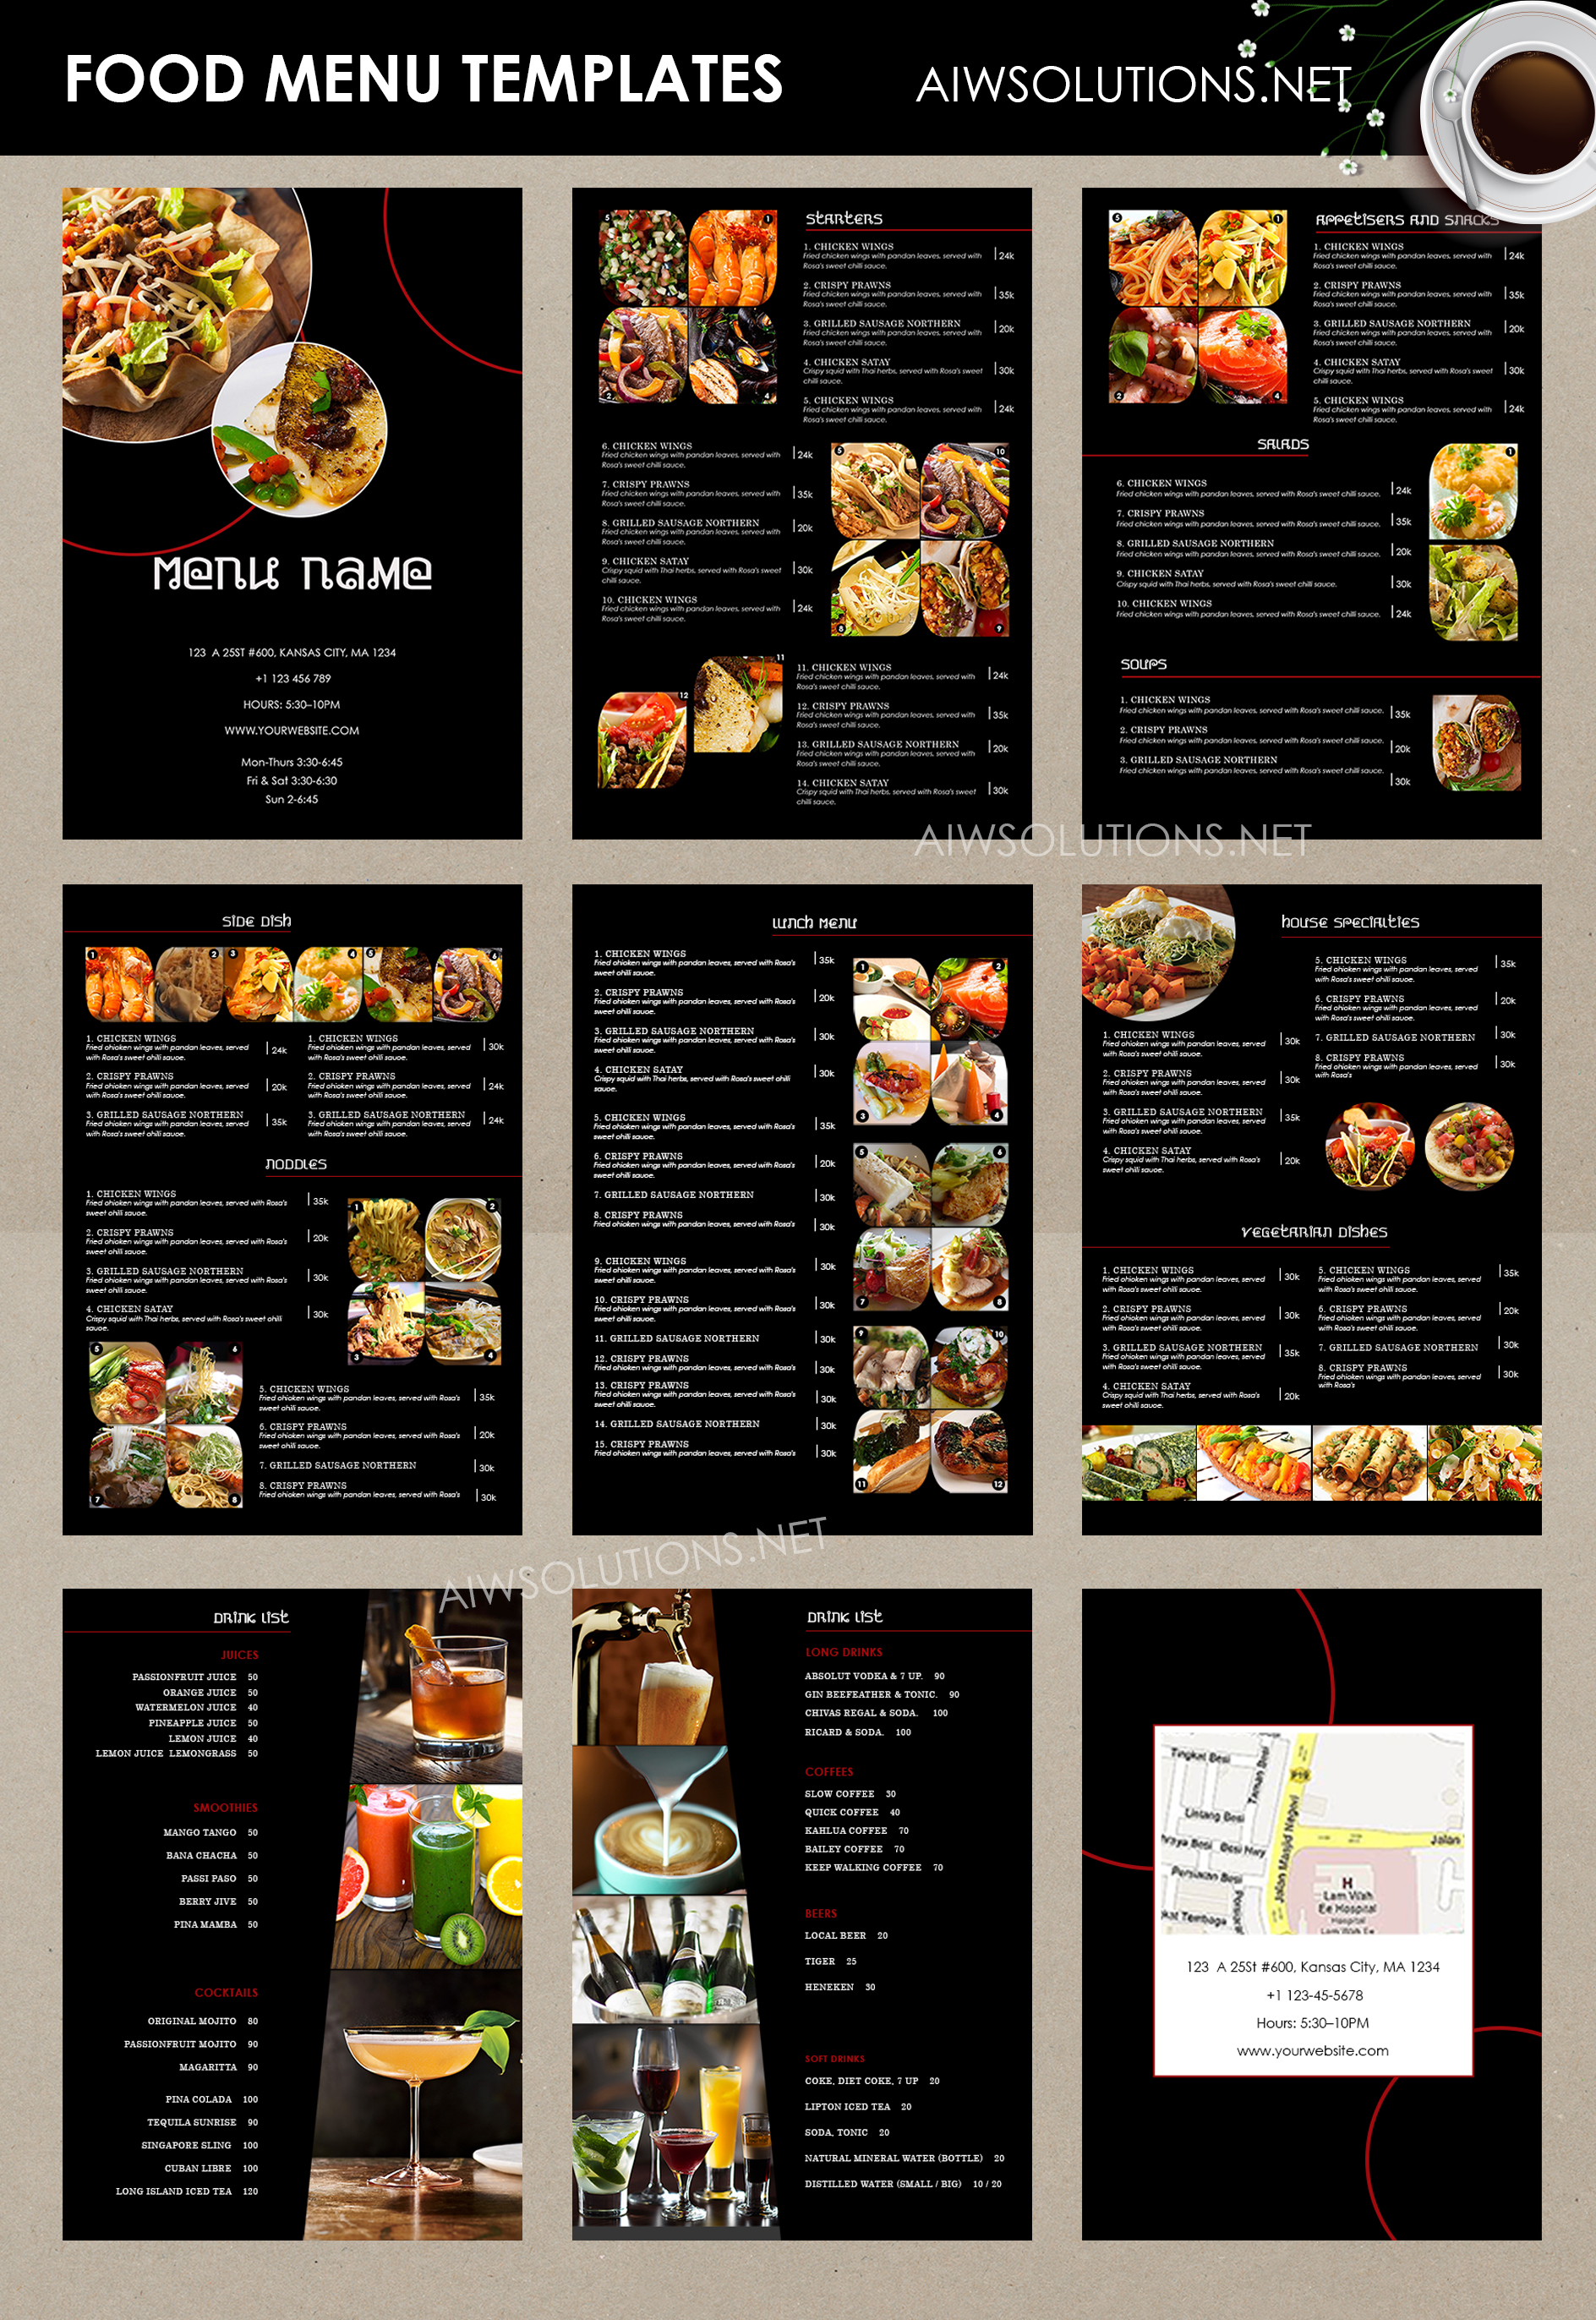 thai-food-menu-template Sample Modern Newsletter Templates on sample newsletter titles for nursing, sample newsletter design, birthday card templates, sample newsletter styles, login templates, sample of nursing home newsletter, sample newsletter for daycare, sample church newsletters, sample teacher newsletters to parents, sample parent newsletter day care, sample newsletter front and back, sample of a company newsletter, sample software, blog templates, sample newsletter content, sample insurance newsletters, sample human resources newsletter, application templates, sample parent newsletter from teacher, calendar templates,